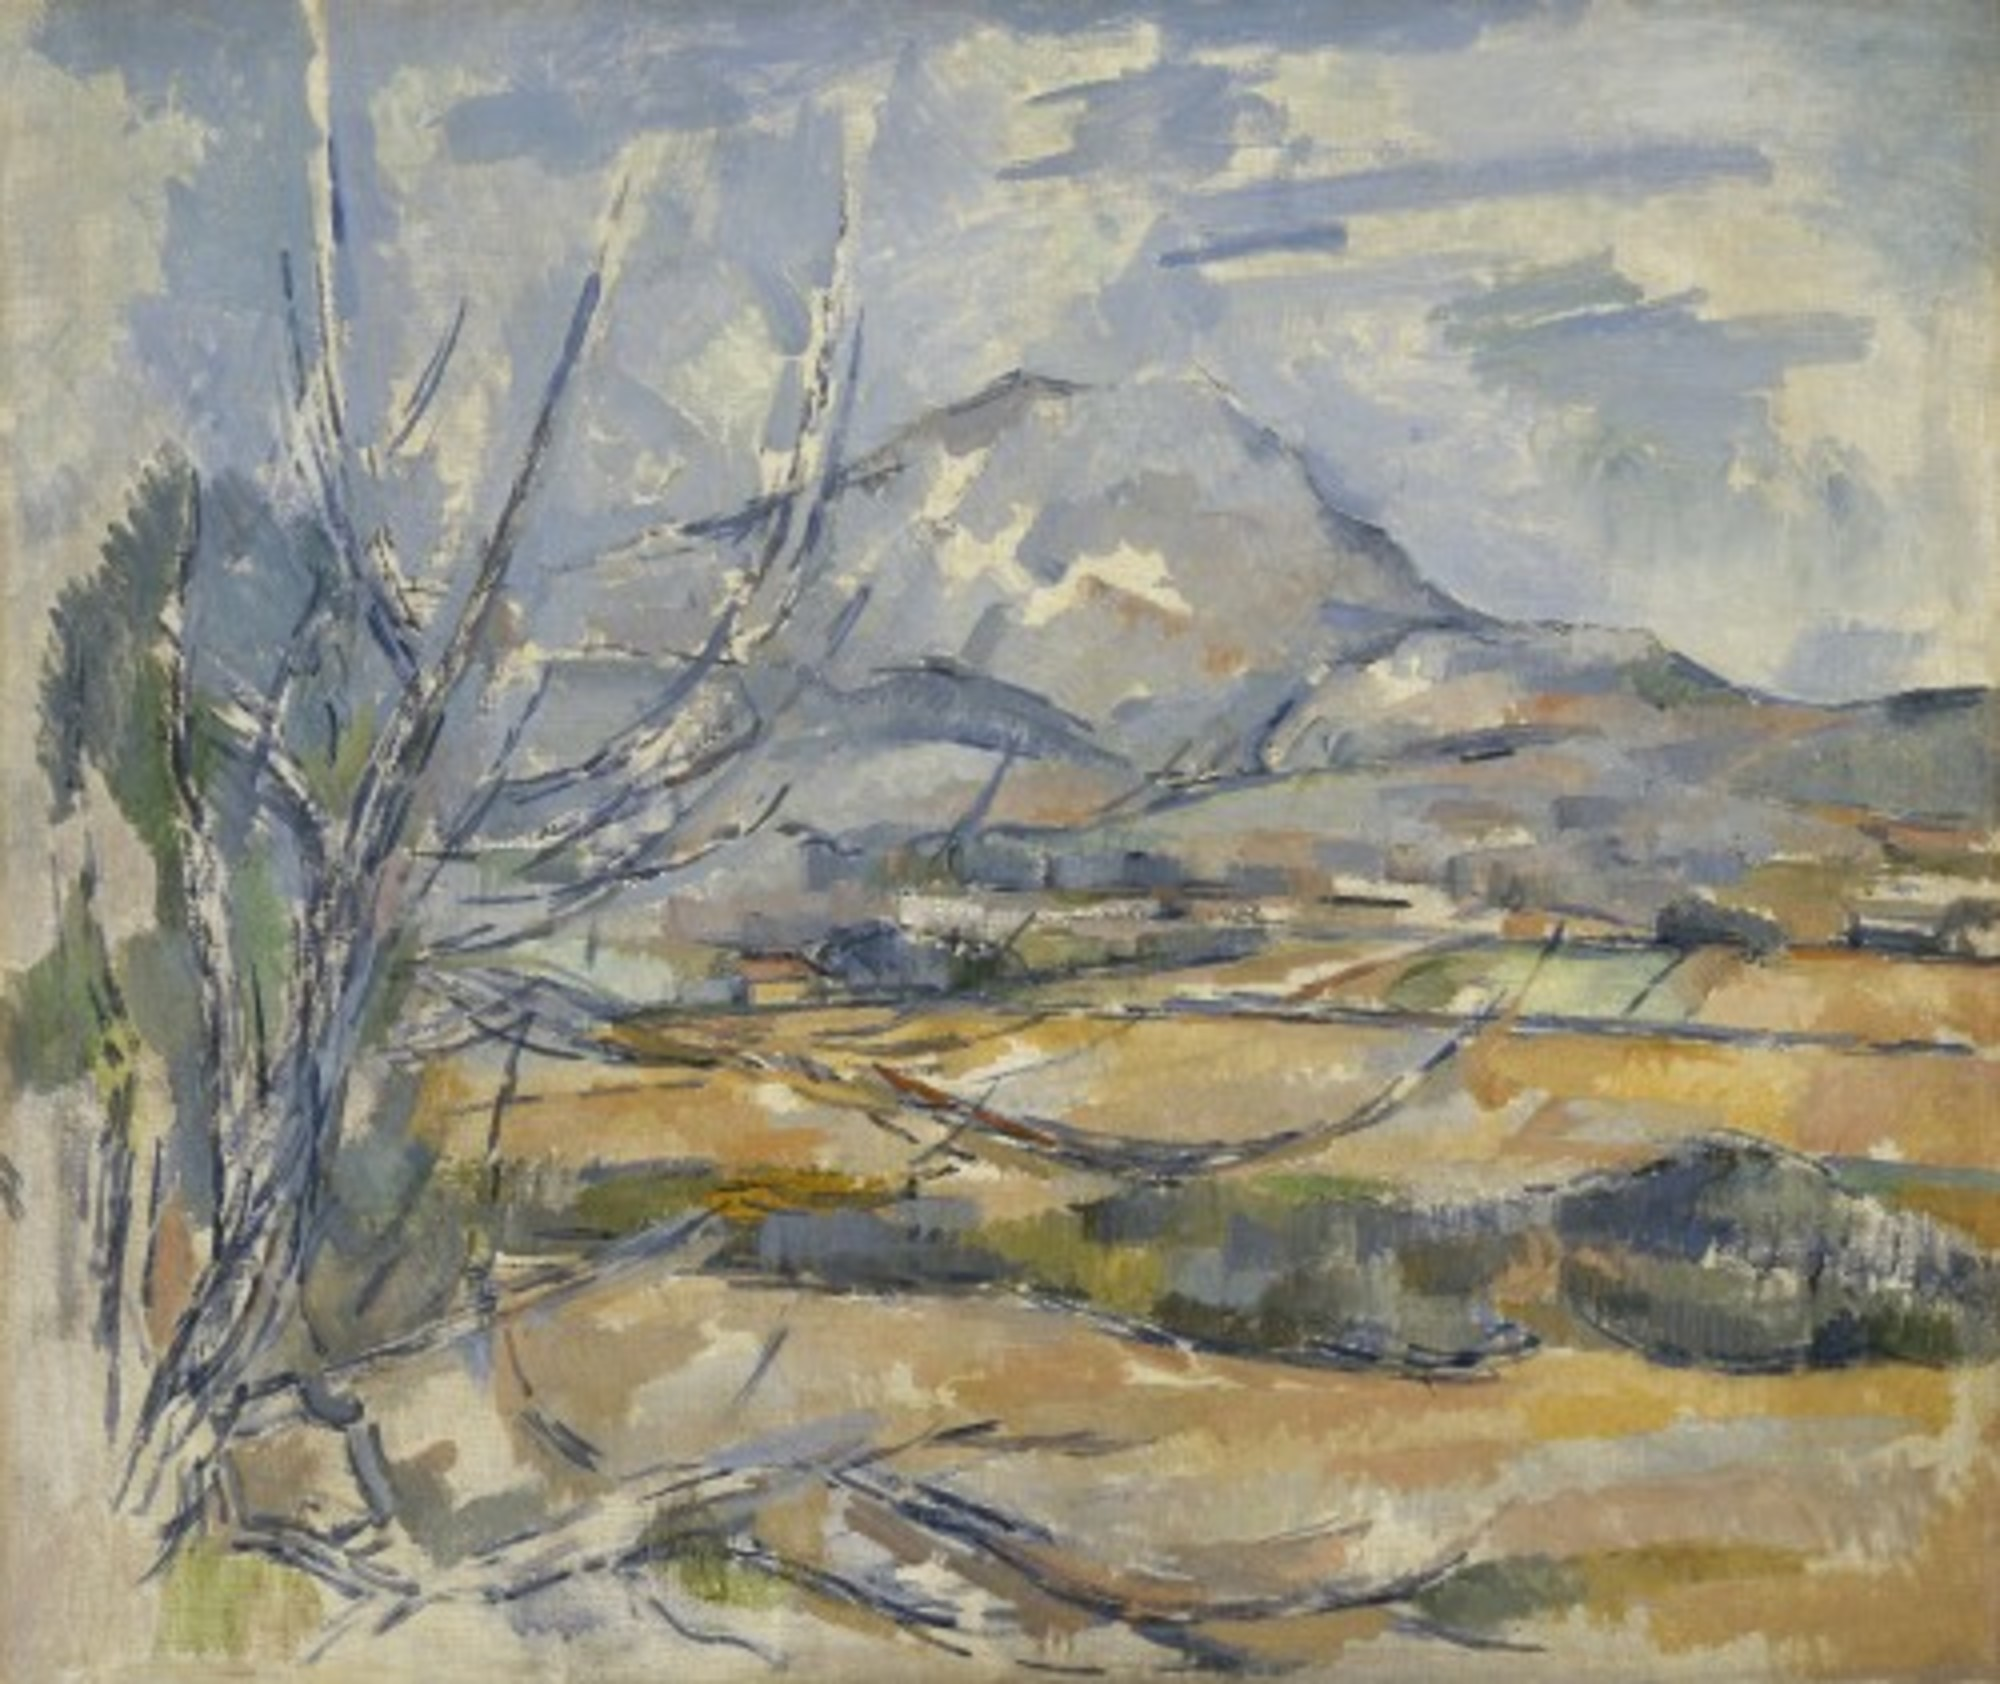 Paul-Cezanne---Montagne-Sainte-Victoire---Google-Art-Project.jpg